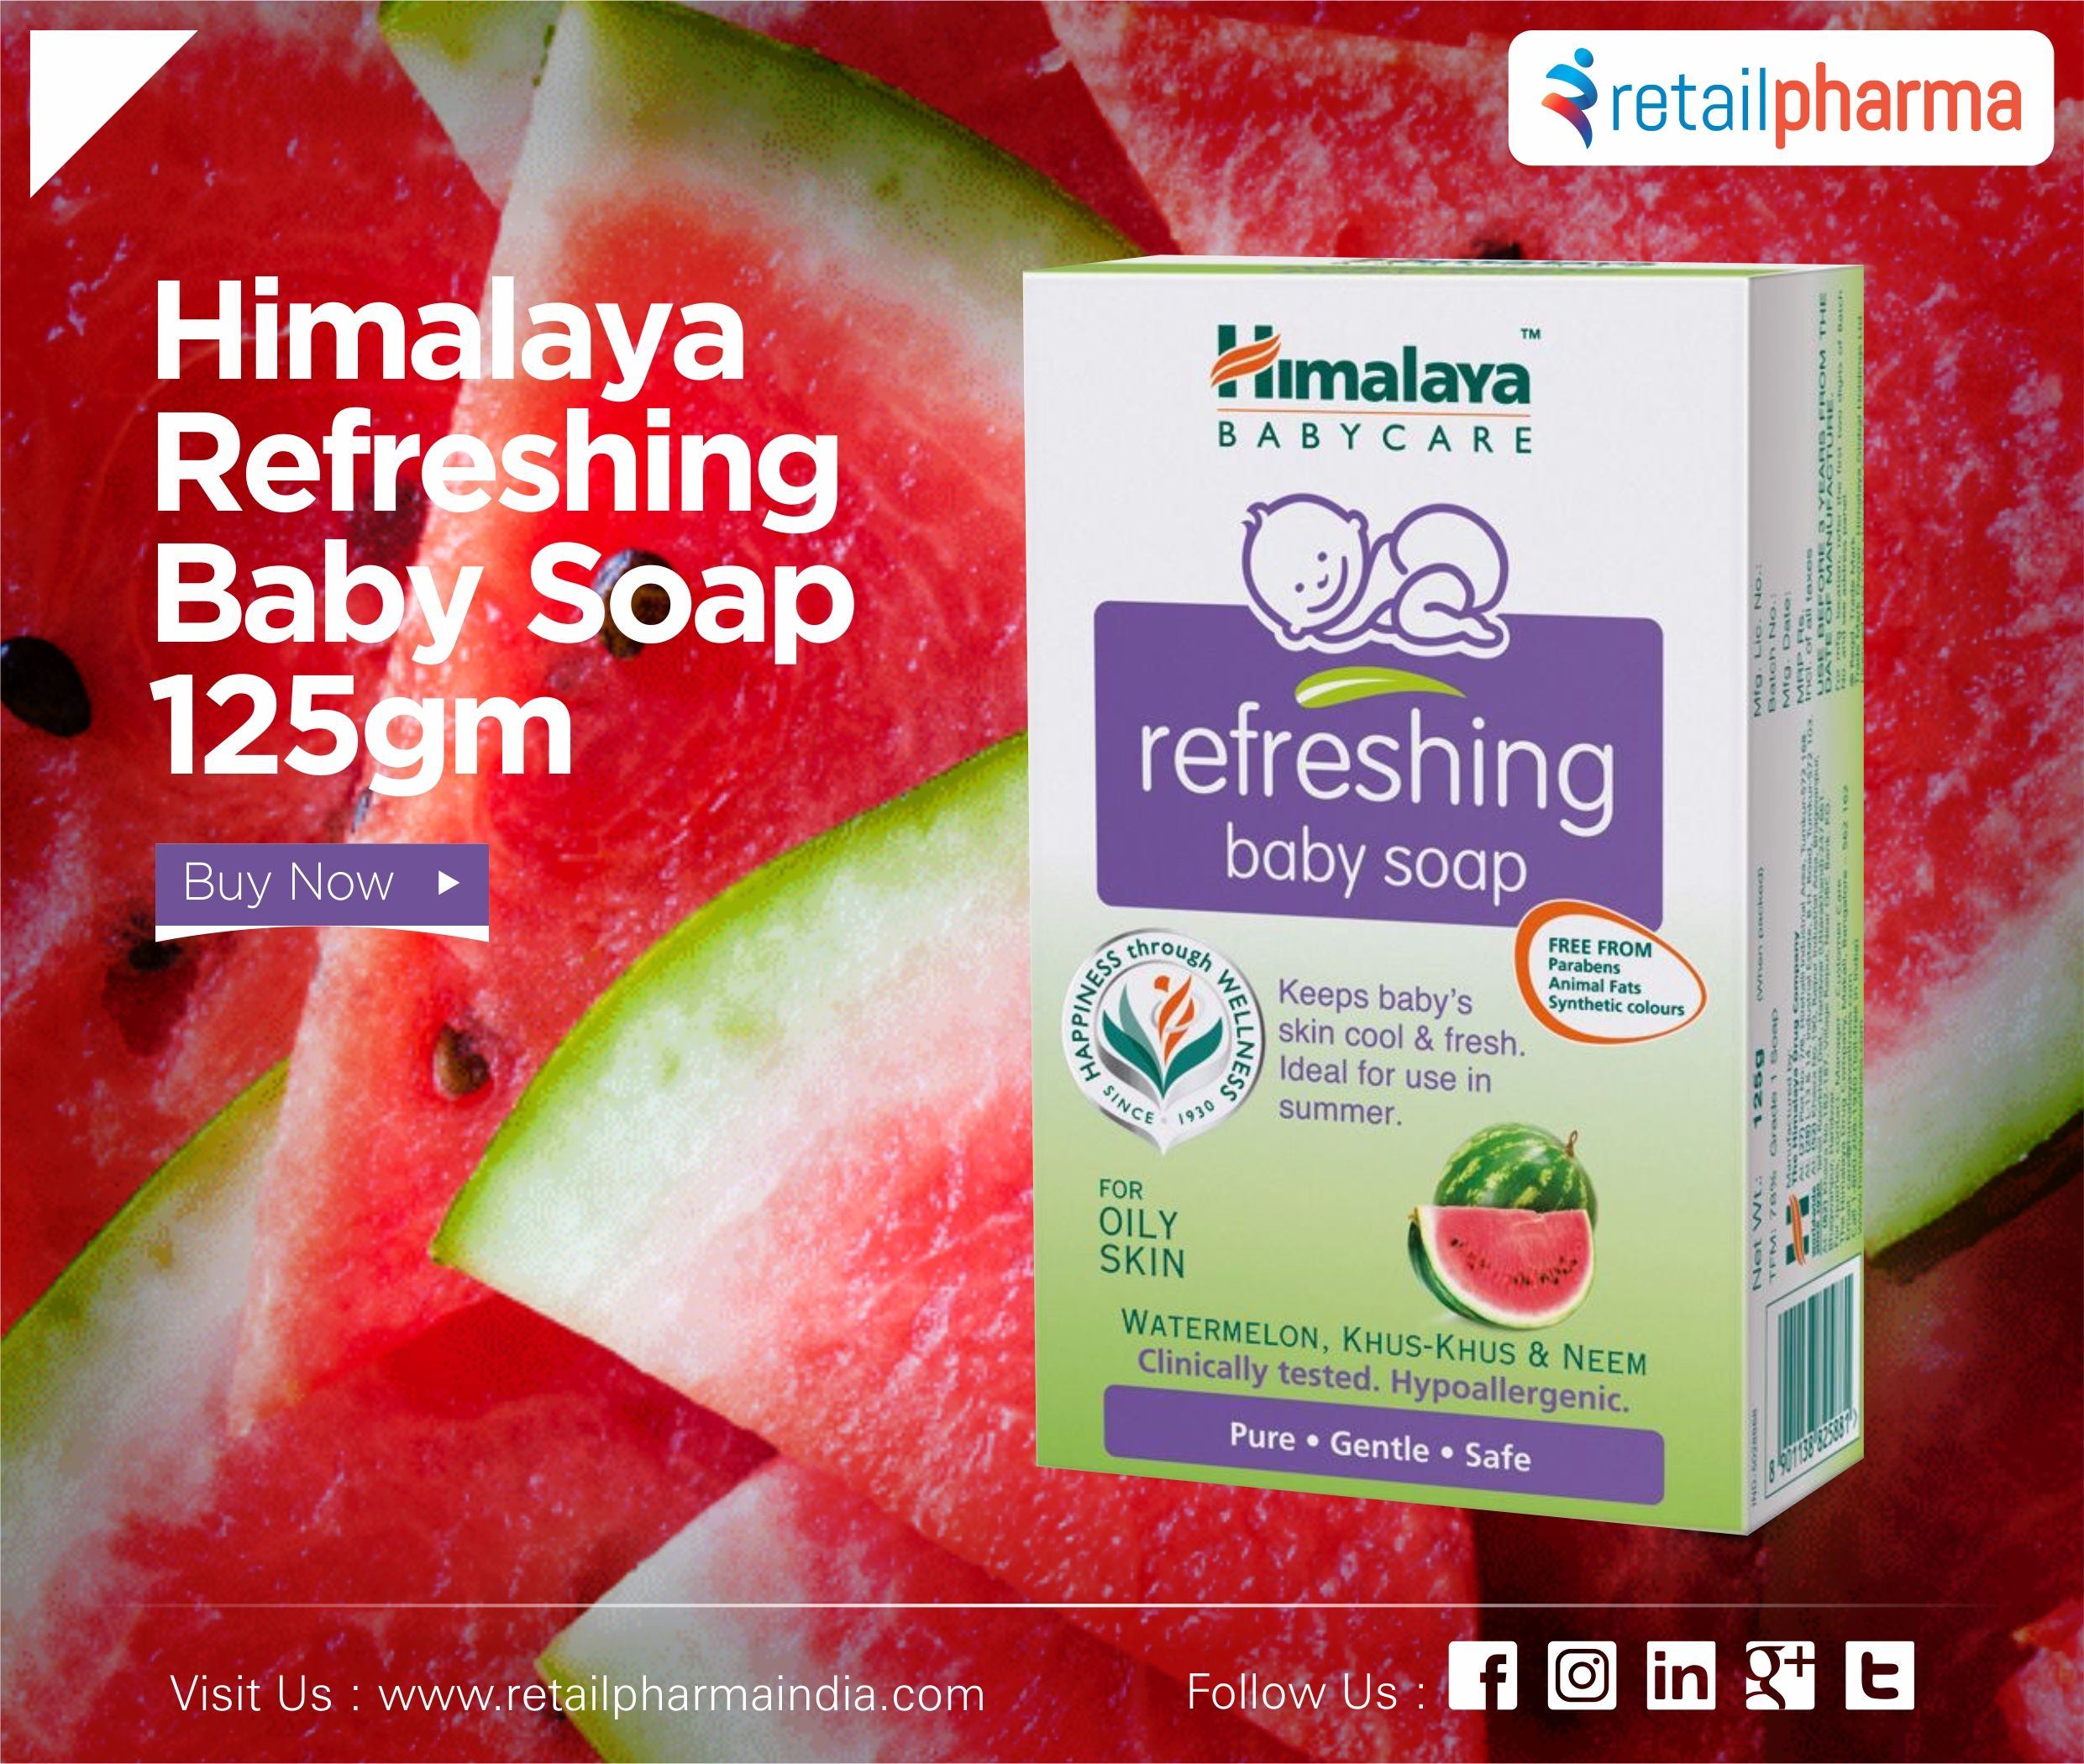 Himalaya Refreshing Baby Soap 125gm Online Baby Care Baby Soap